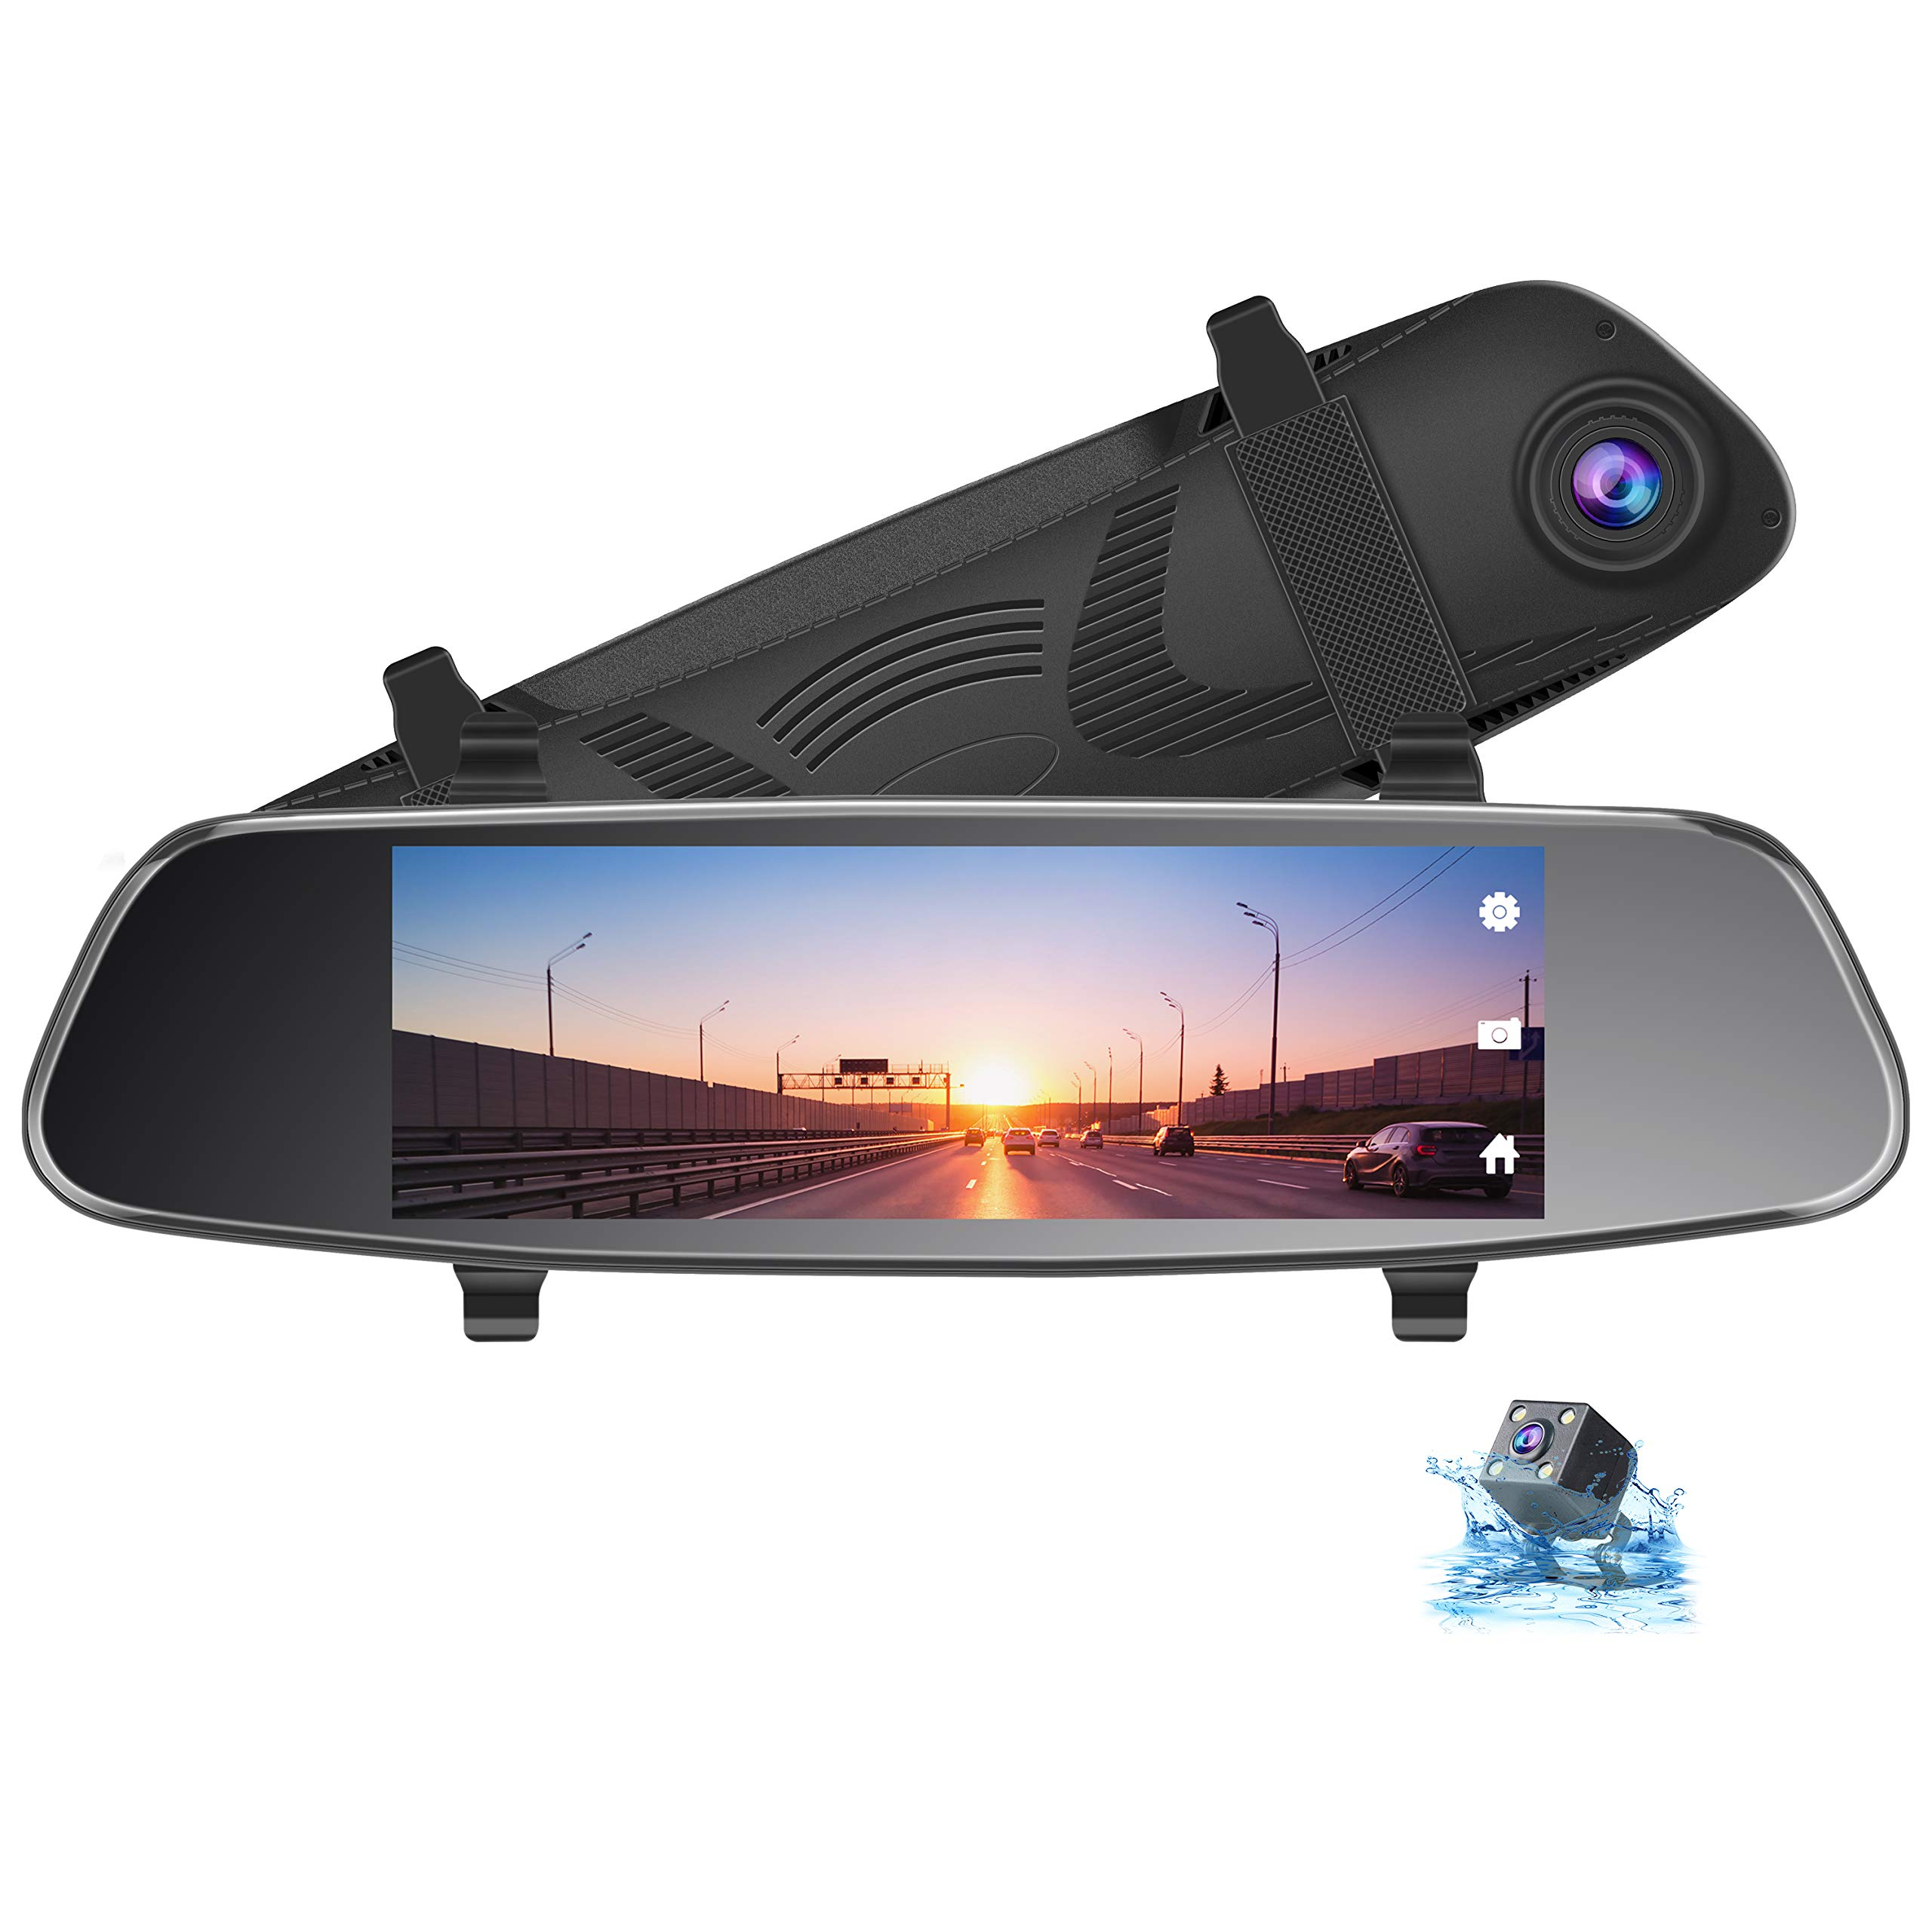 TOGUARD 8'' Mirror Dash Cam, Dual Lens Touch Screen Rear View Mirror Camera 1080P Front and 720P Backup Camera with G-Sensor Parking Monitor